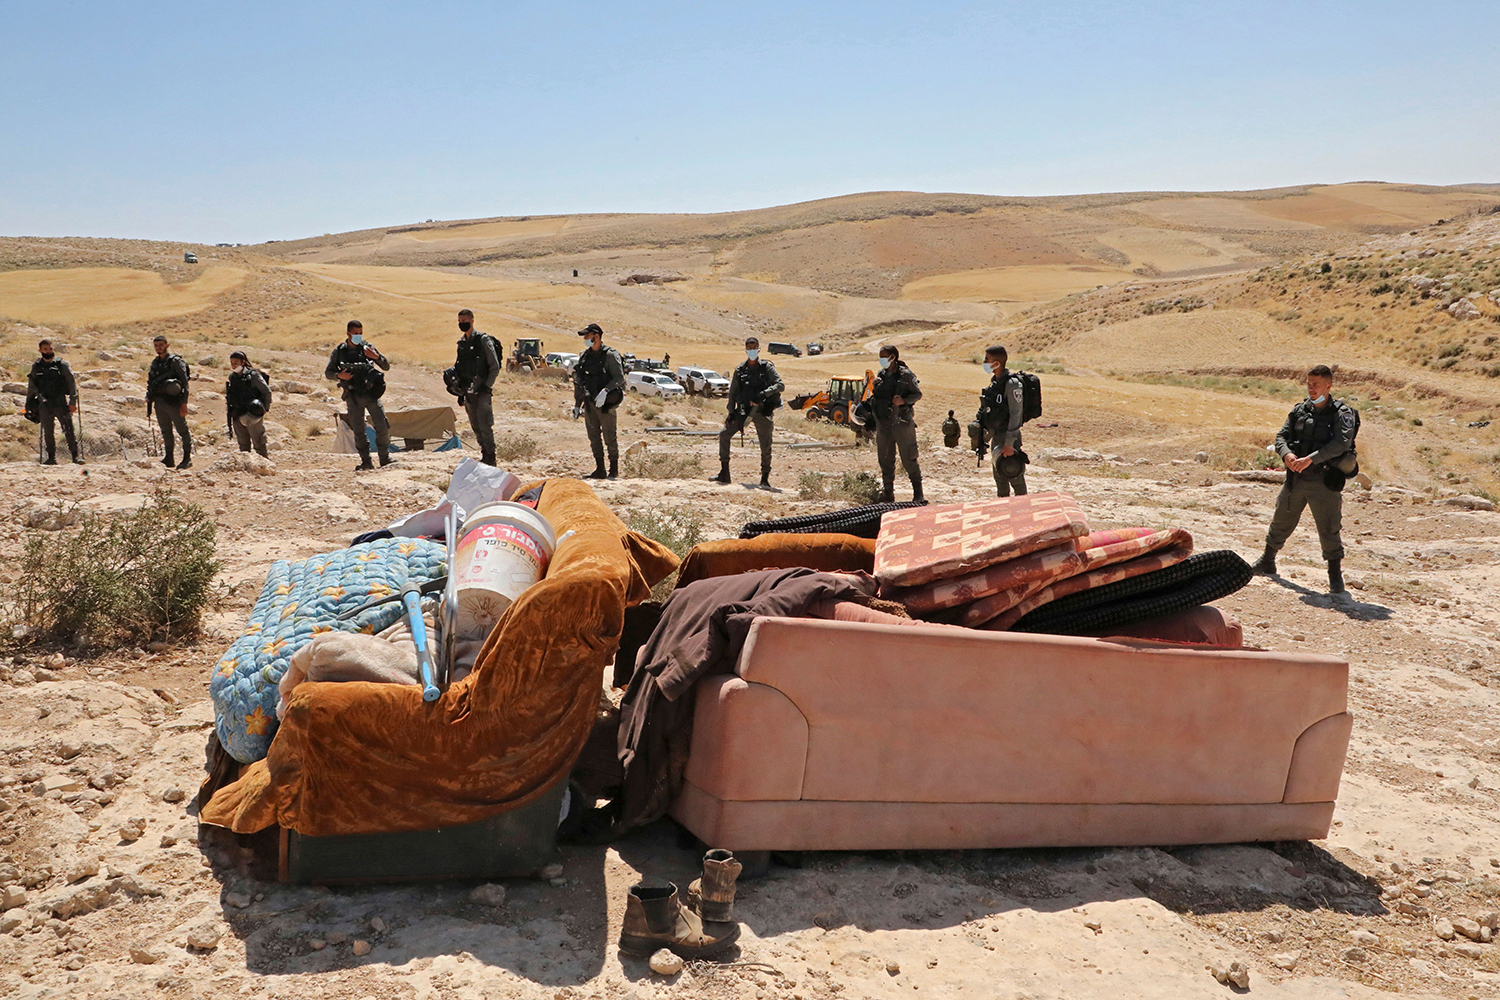 Israeli forces stand by furniture after structures used as homes by Palestinians were demolished south of Yatta village in the southern West Bank district of Hebron on June 3 following an order issued by Israeli authorities. HAZEM BADER/AFP via Getty Images